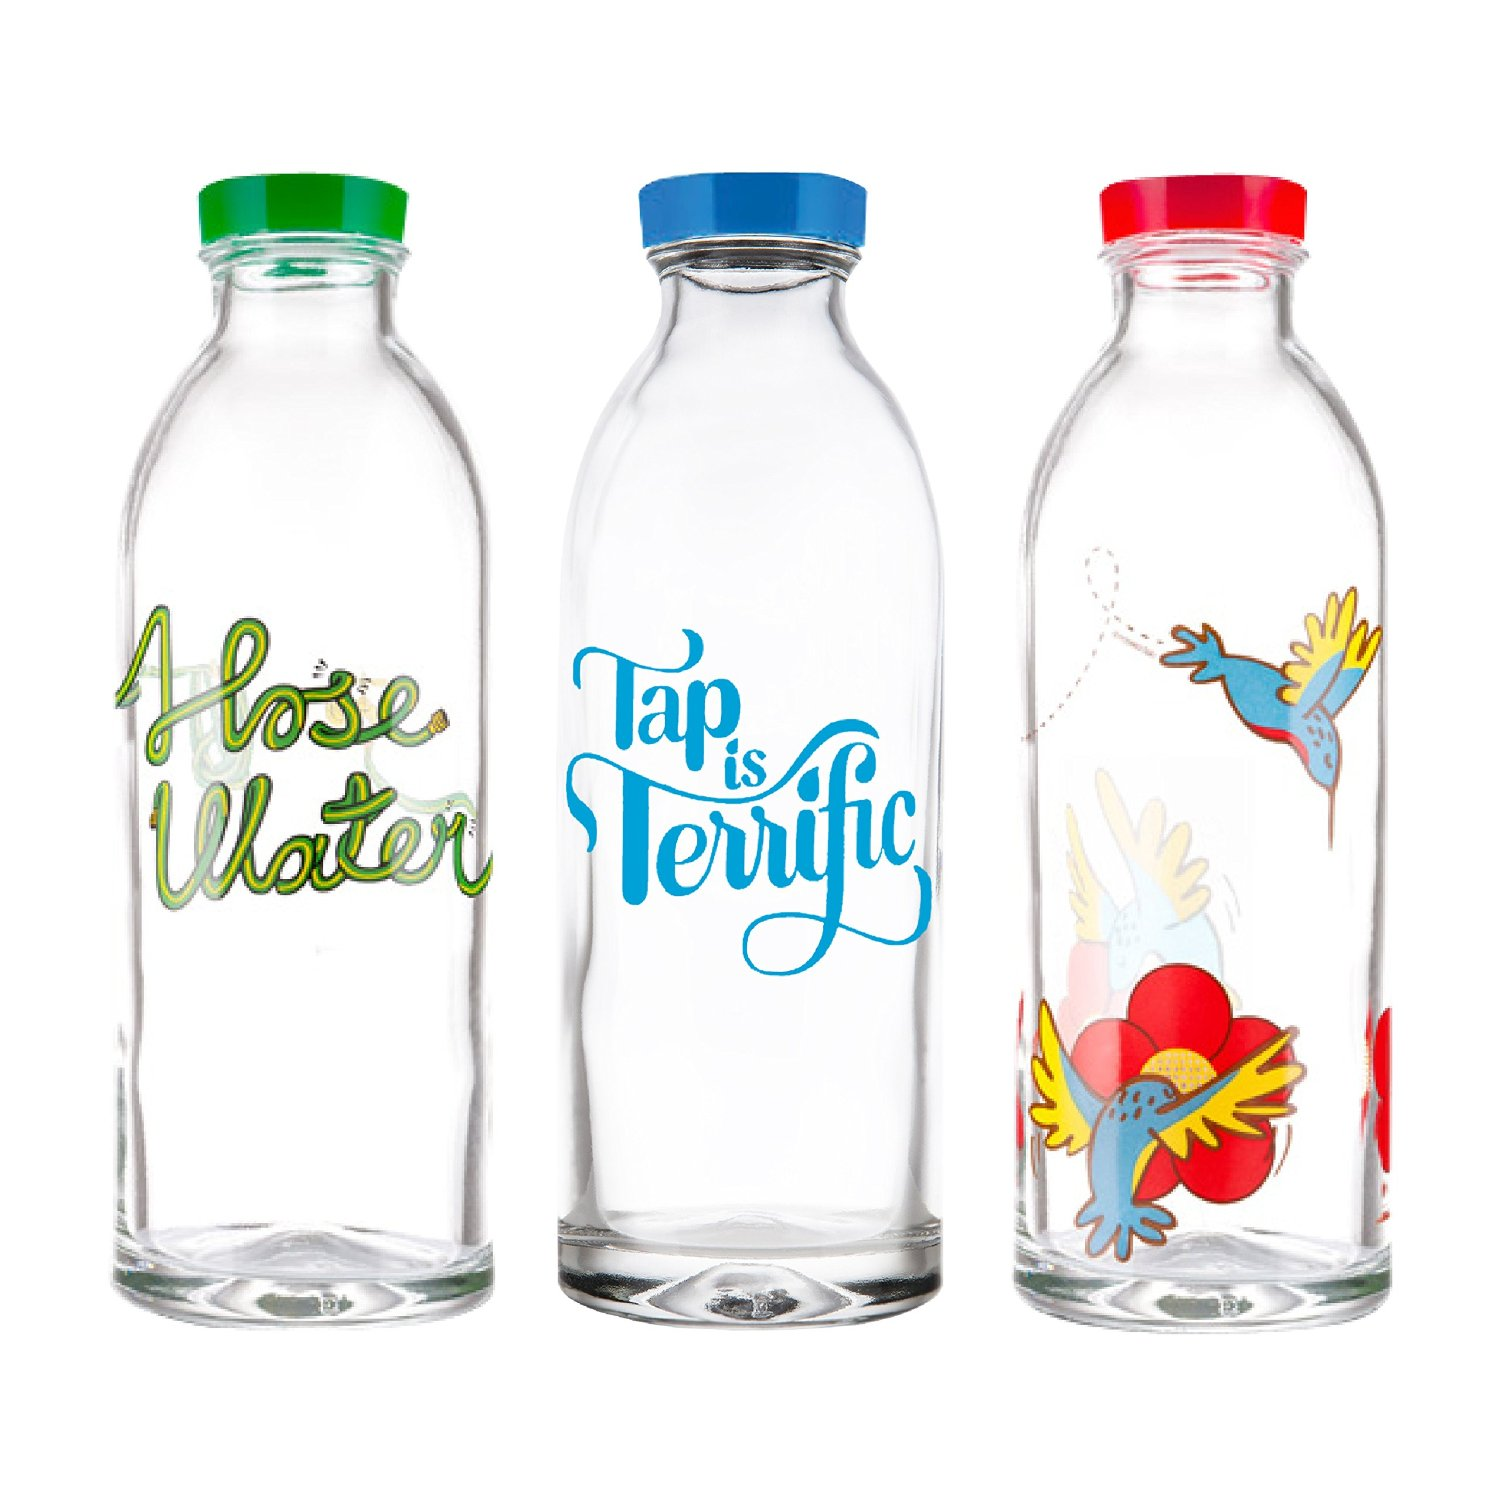 Cute Glassware Reusable Glass Water Bottles With Cute Designs